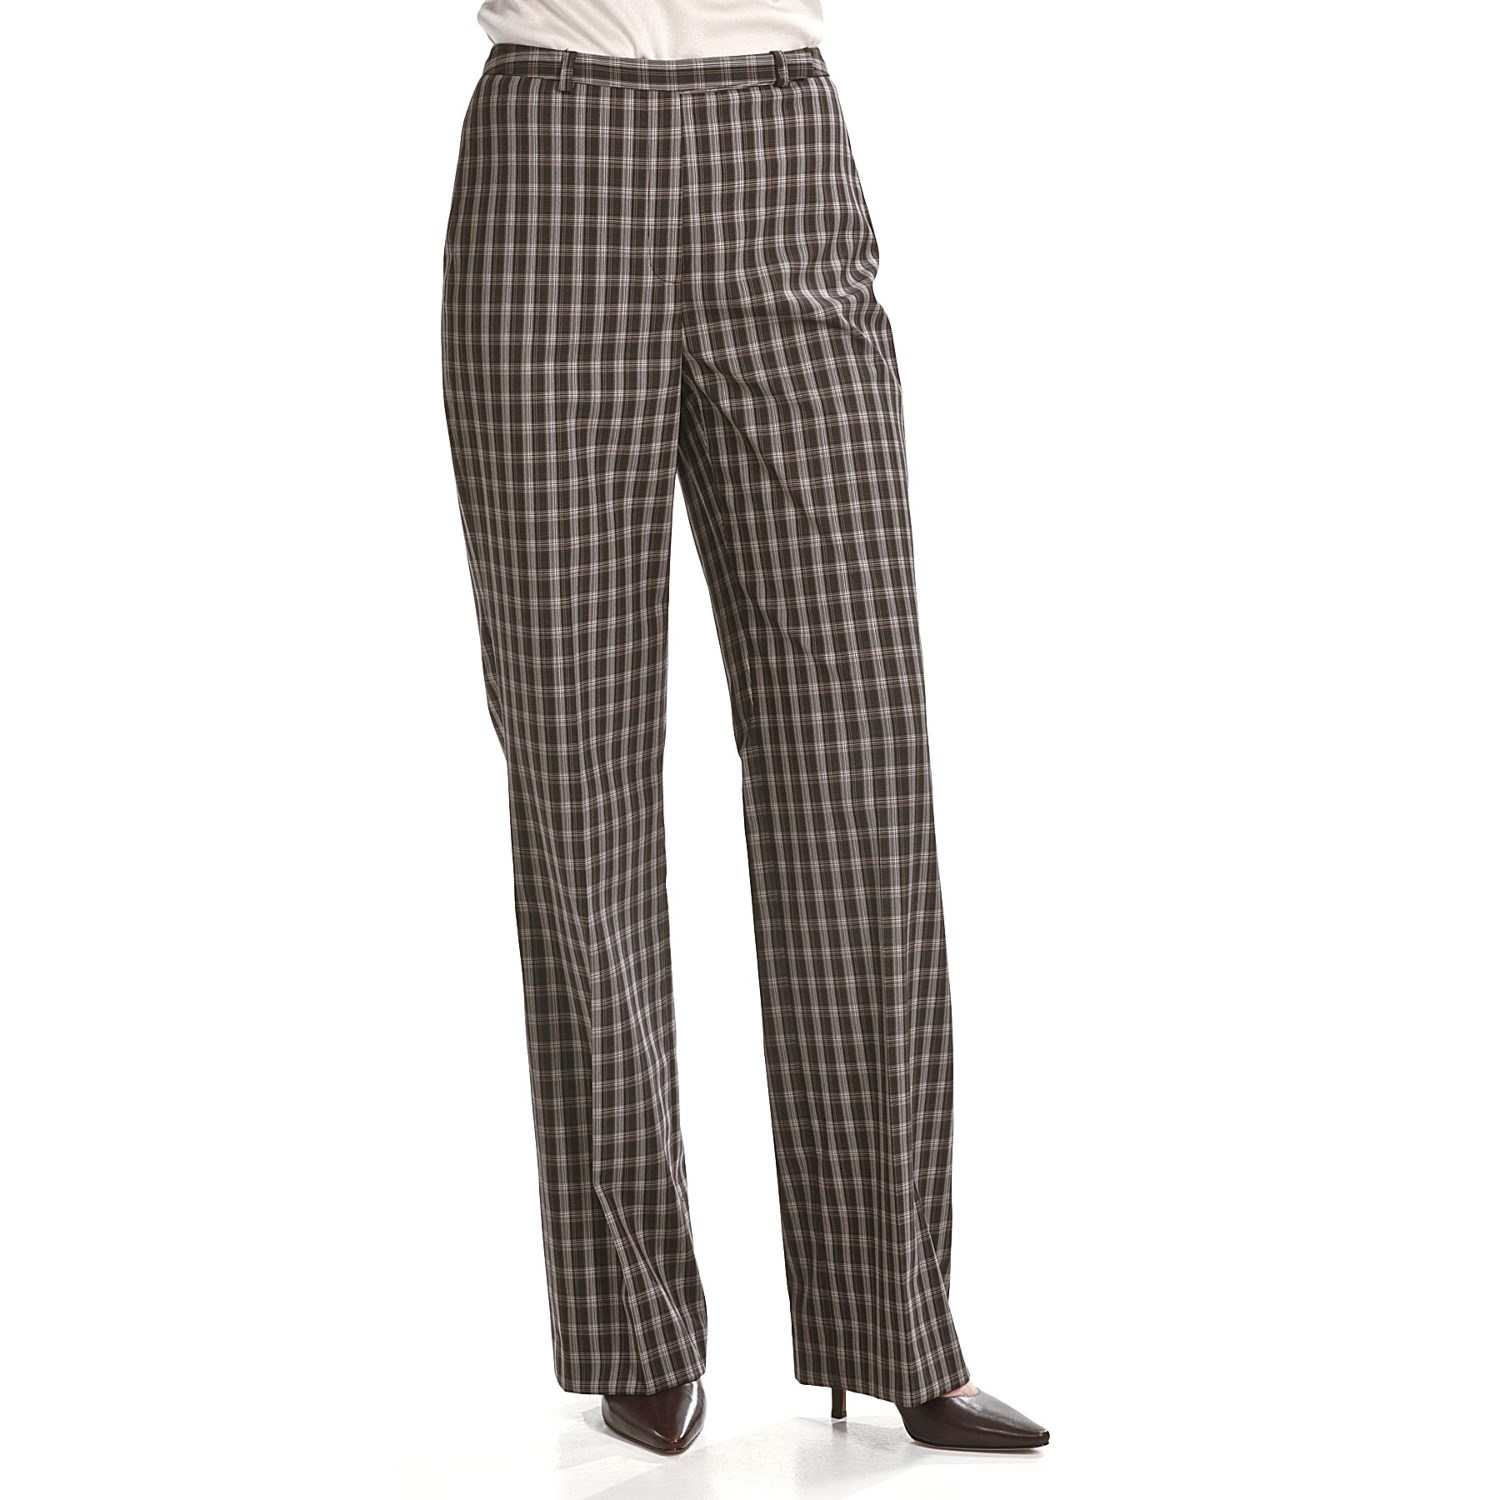 New PENDLETON Plaid Pants Trousers Women39s Wool By ProbablyPlaid